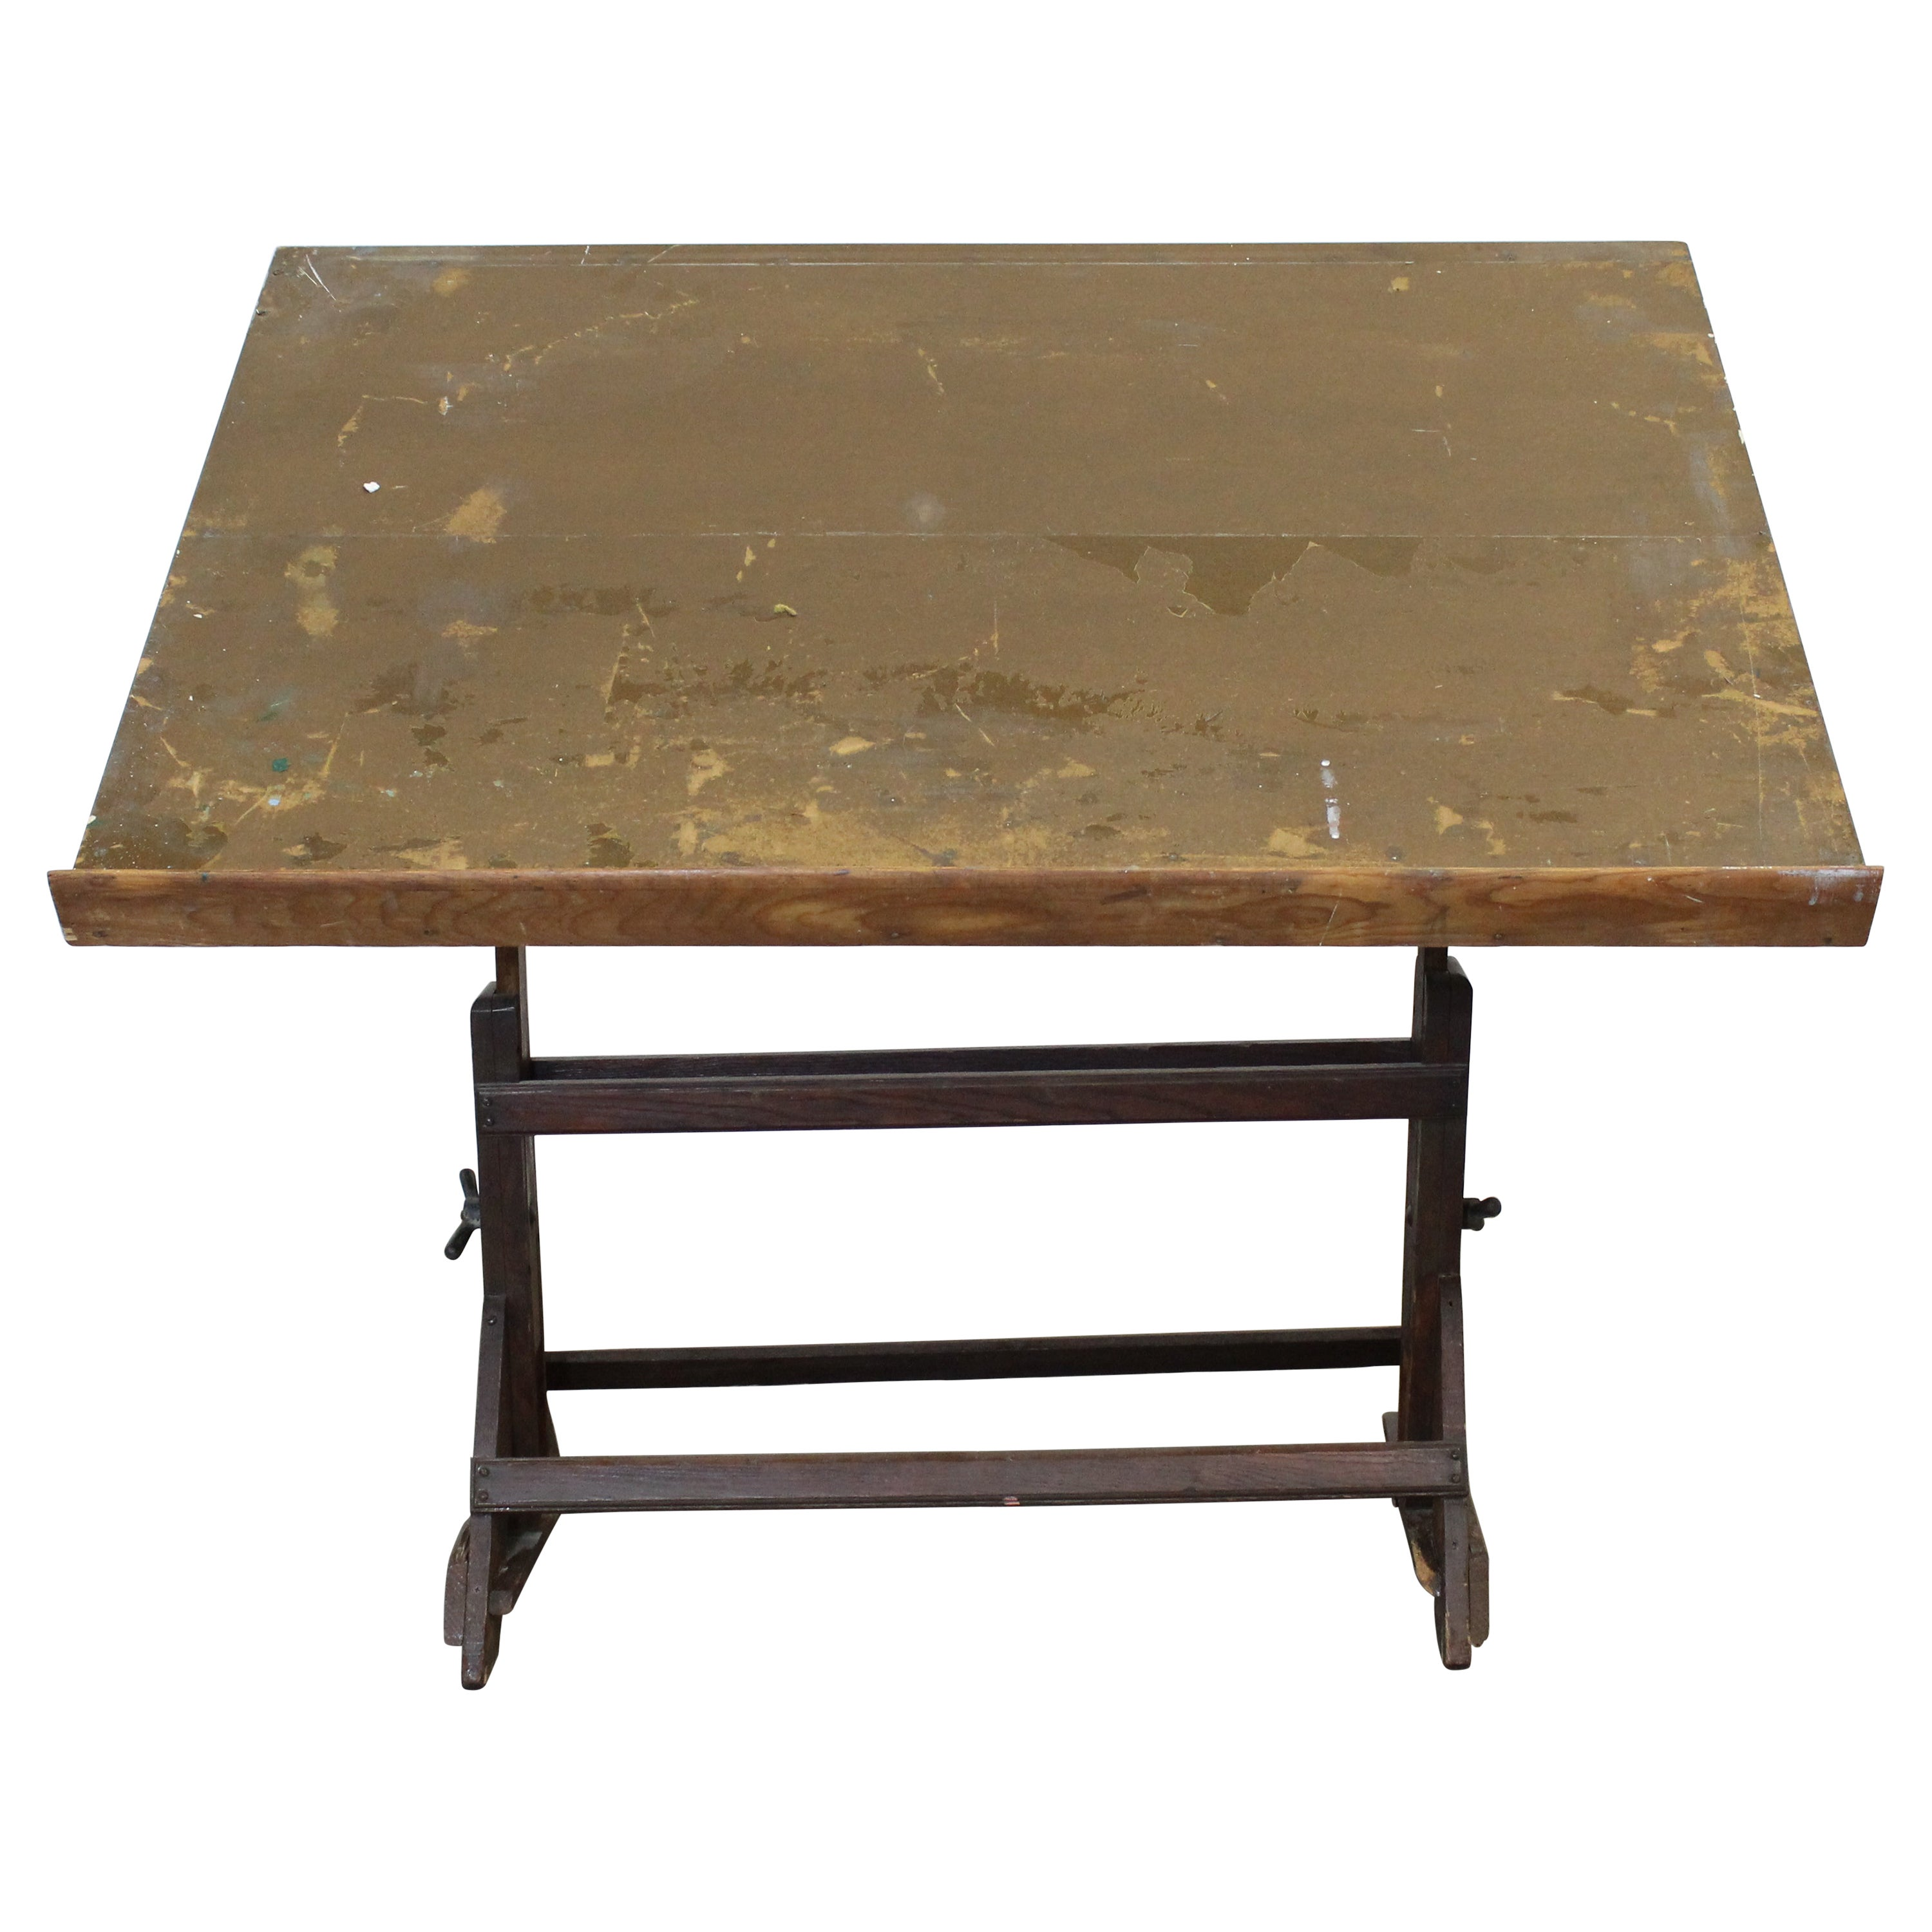 Antique Industrial Drafting Table